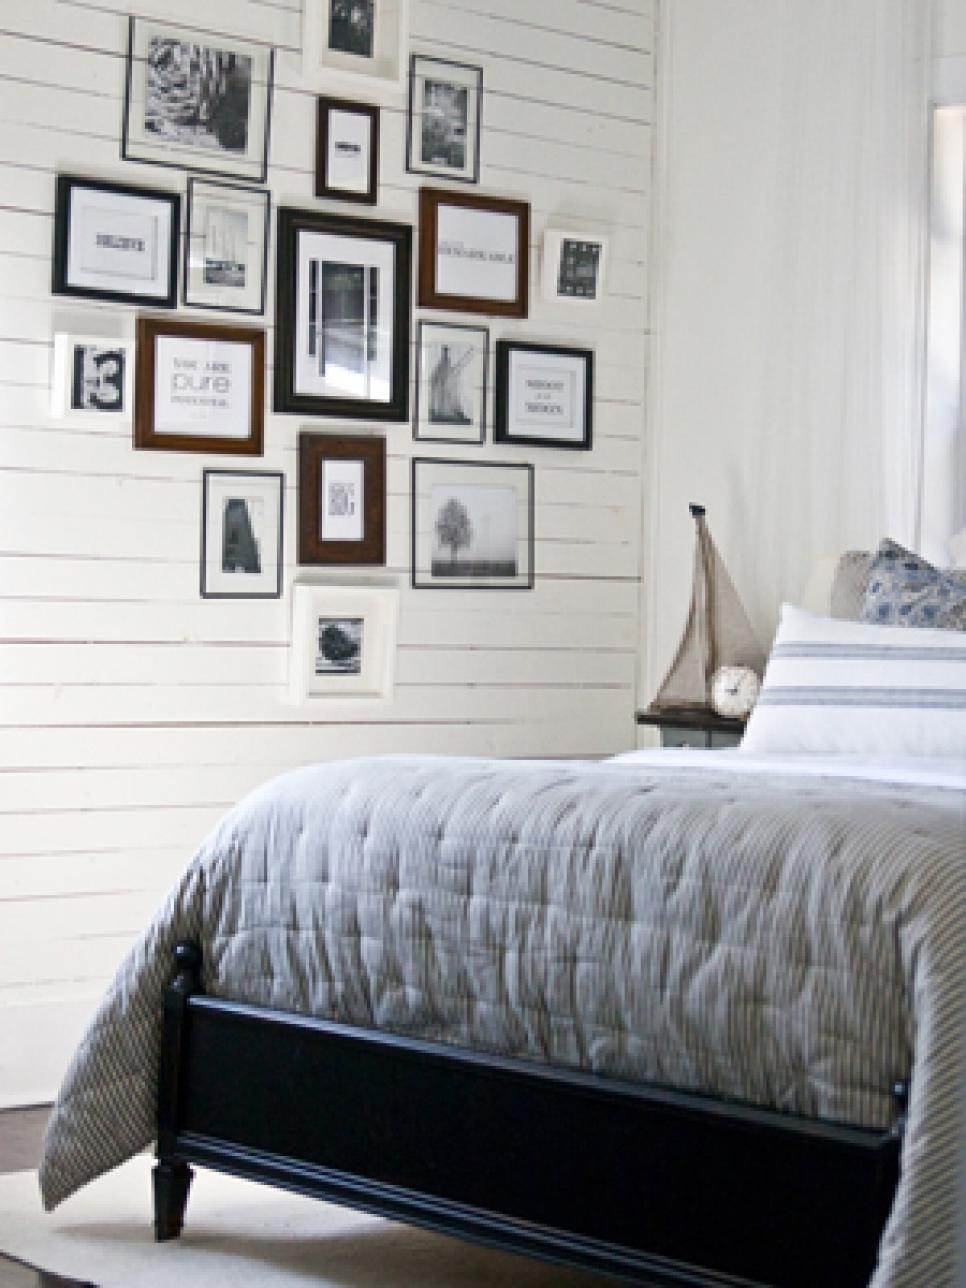 10 Ways To Display Bedroom Frames | Hgtv pertaining to Bed Wall Art